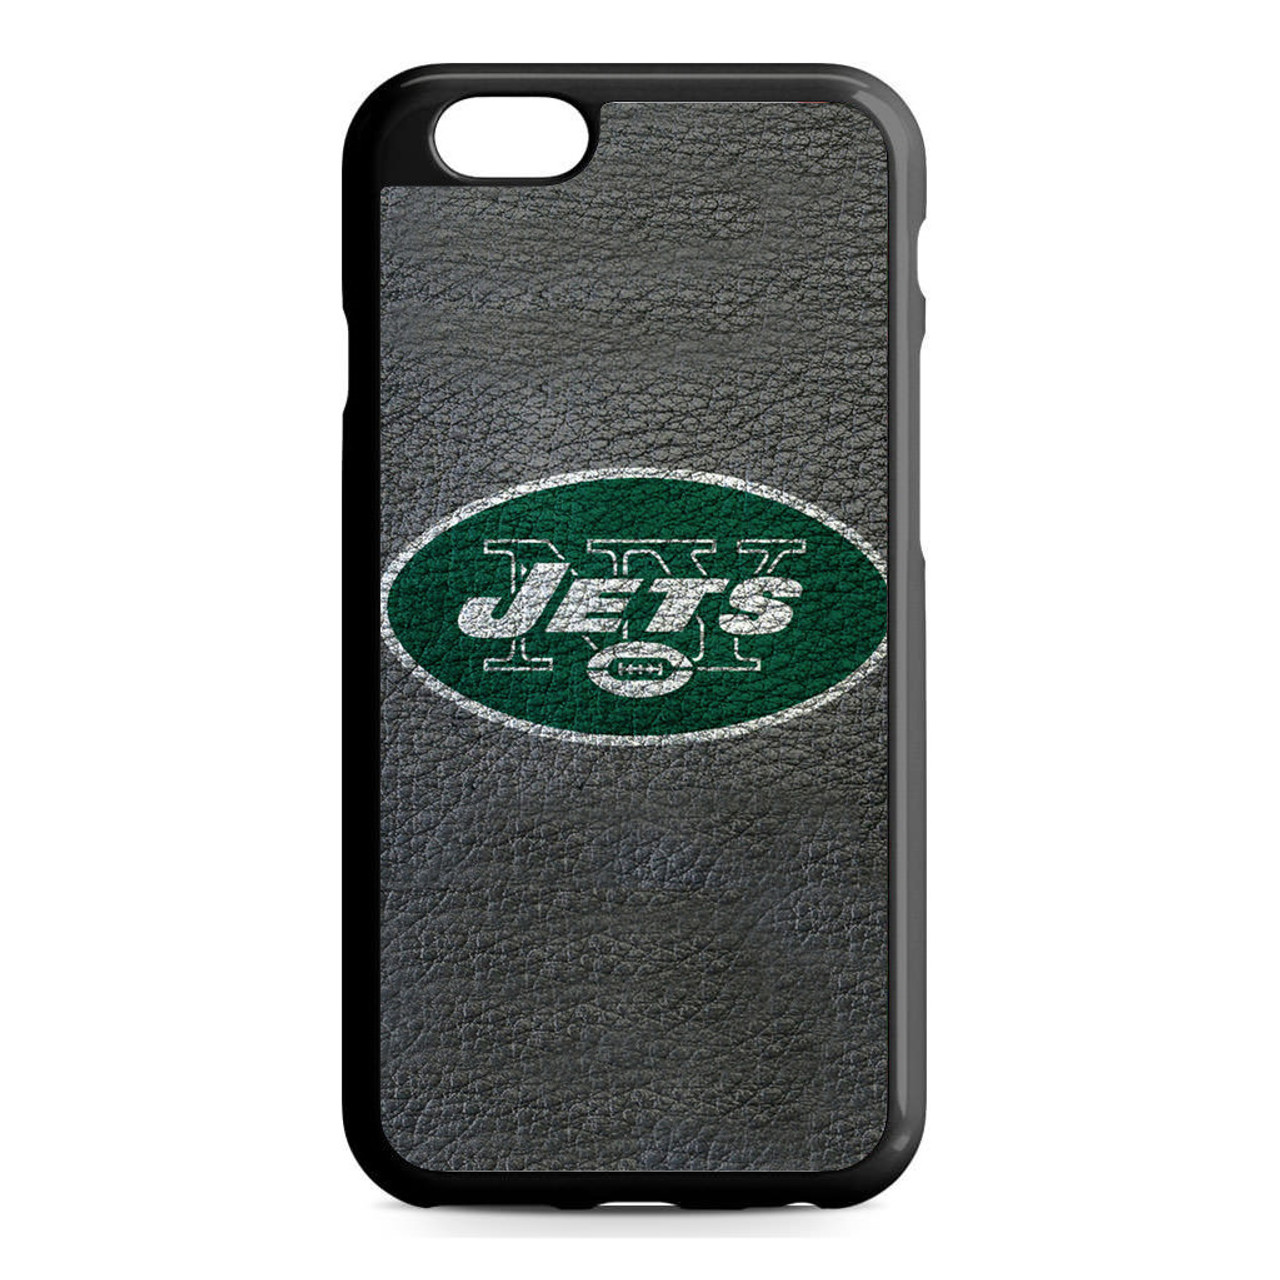 quality design 5b3ab dec57 New York Jets NFL Football iPhone 6/6S Case